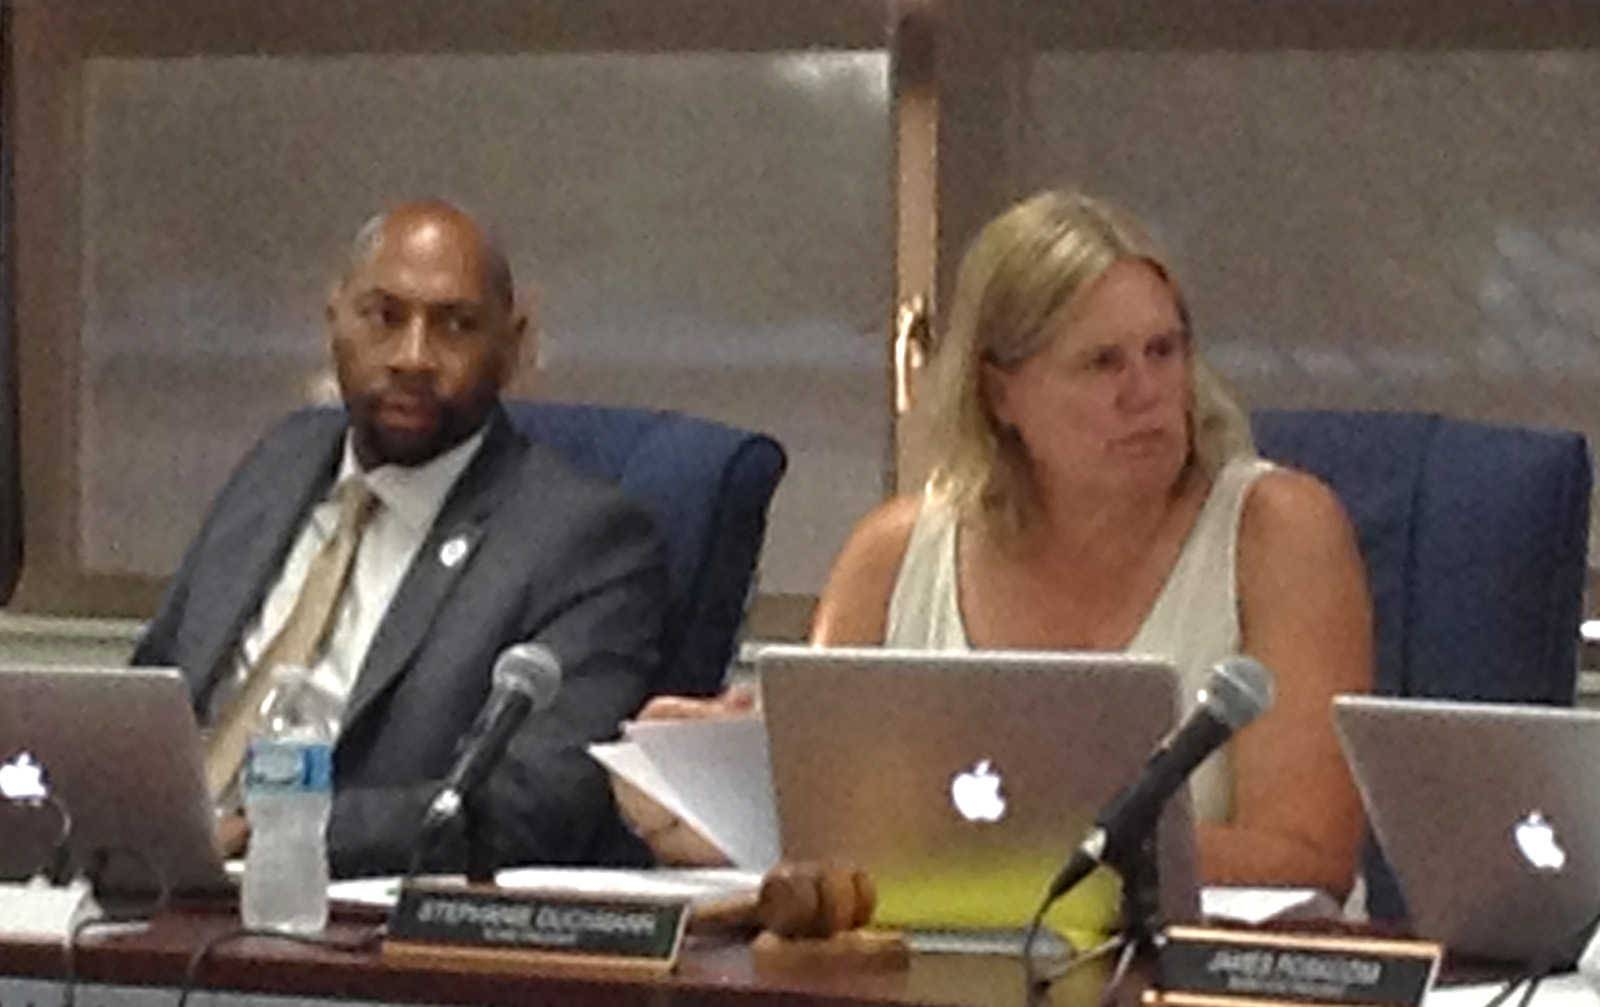 Des Plaines Elementary District 62 board President Stephanie Duckmann on Monday defended the hiring of Superintendent Floyd Williams Jr., who was accused of misconduct at his previous job.